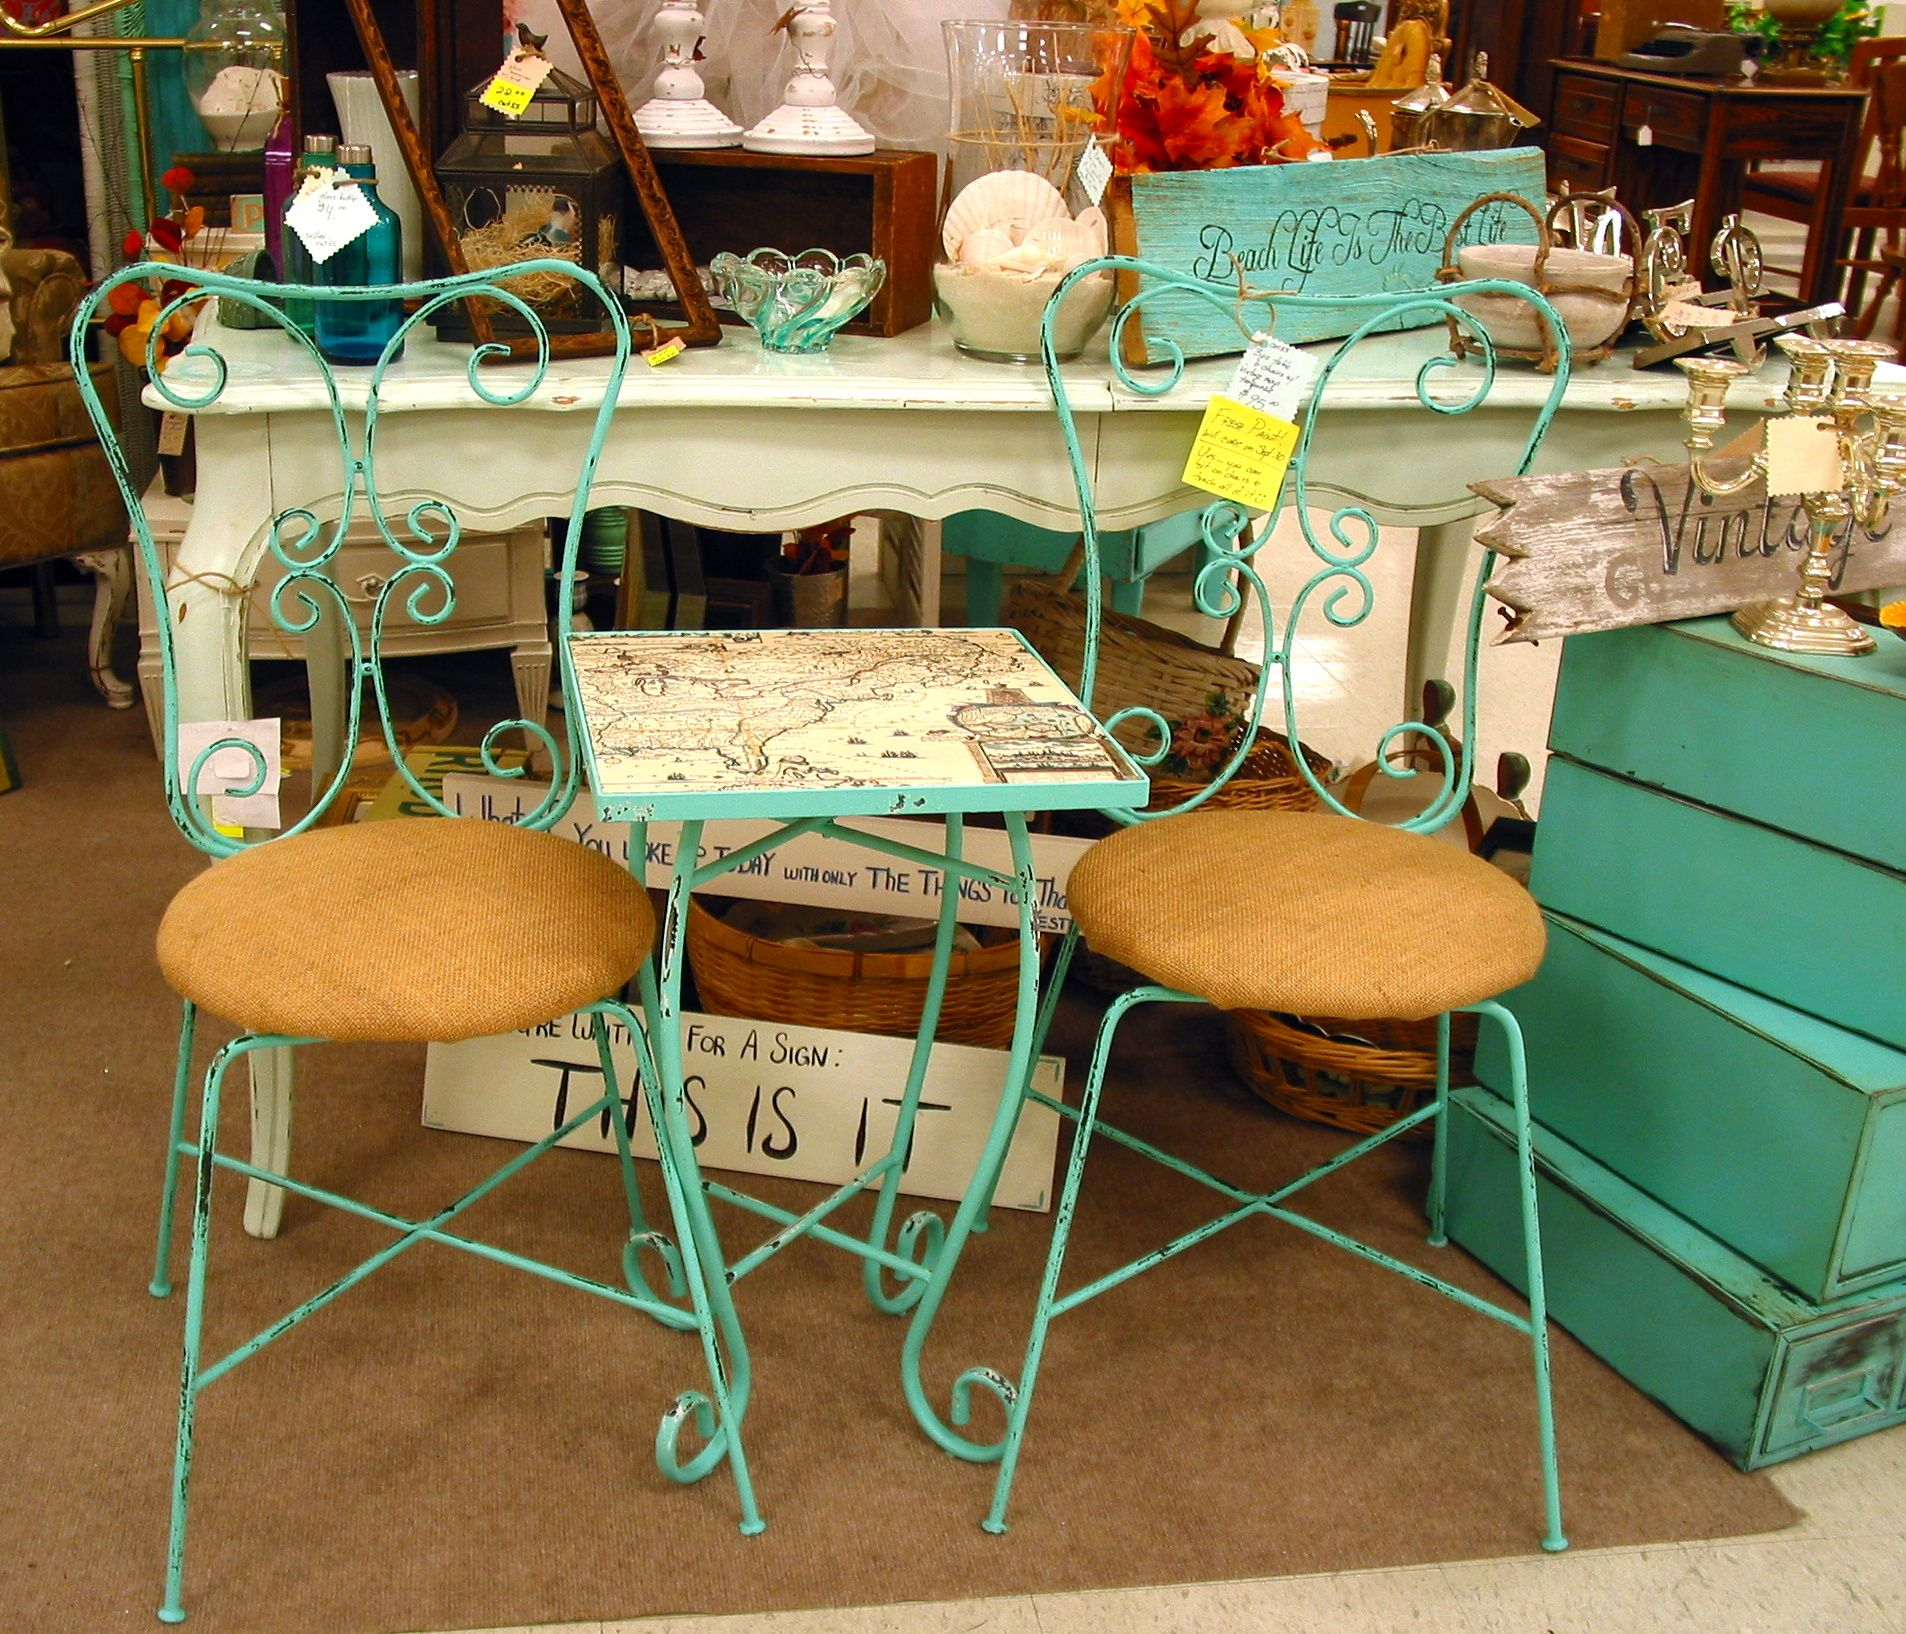 New Bistro Set In Turquoise Color, Shabby Chic, Painted Furniture Chairs  Table, Map